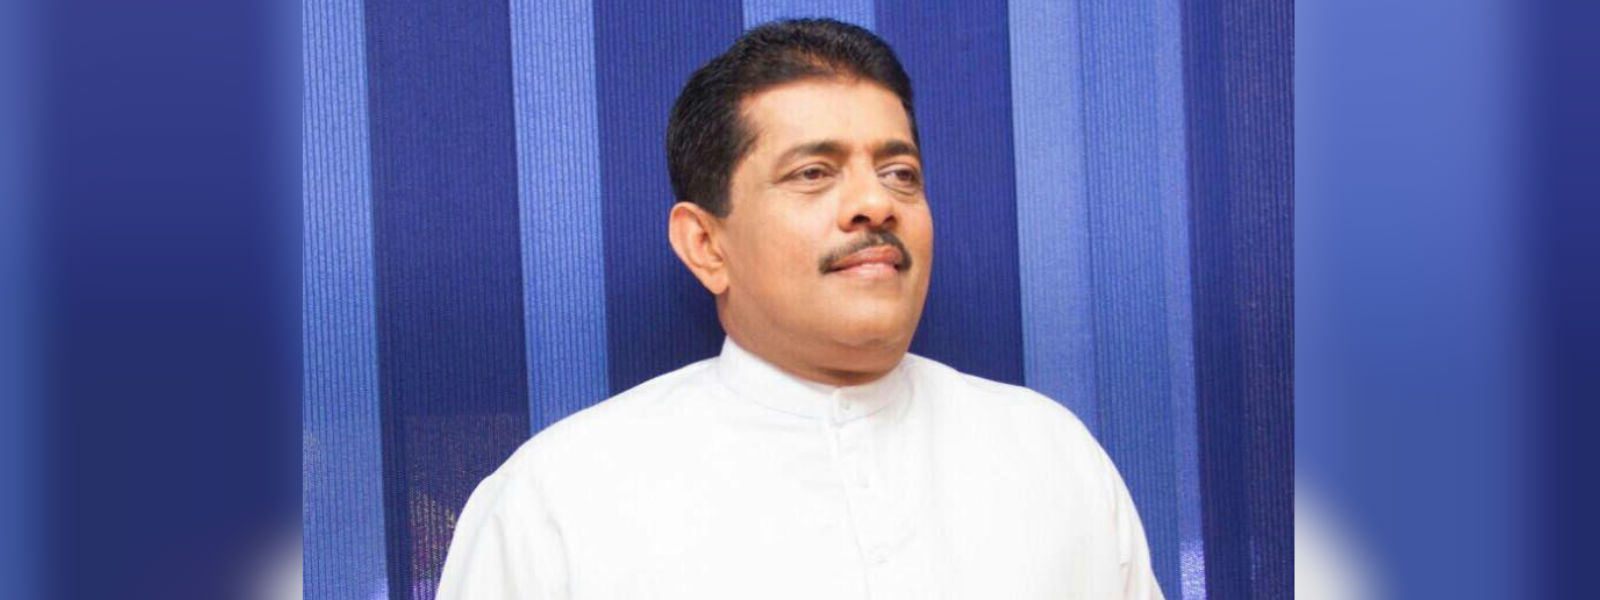 Sarana Gunawardena released on bail following High Court appeal